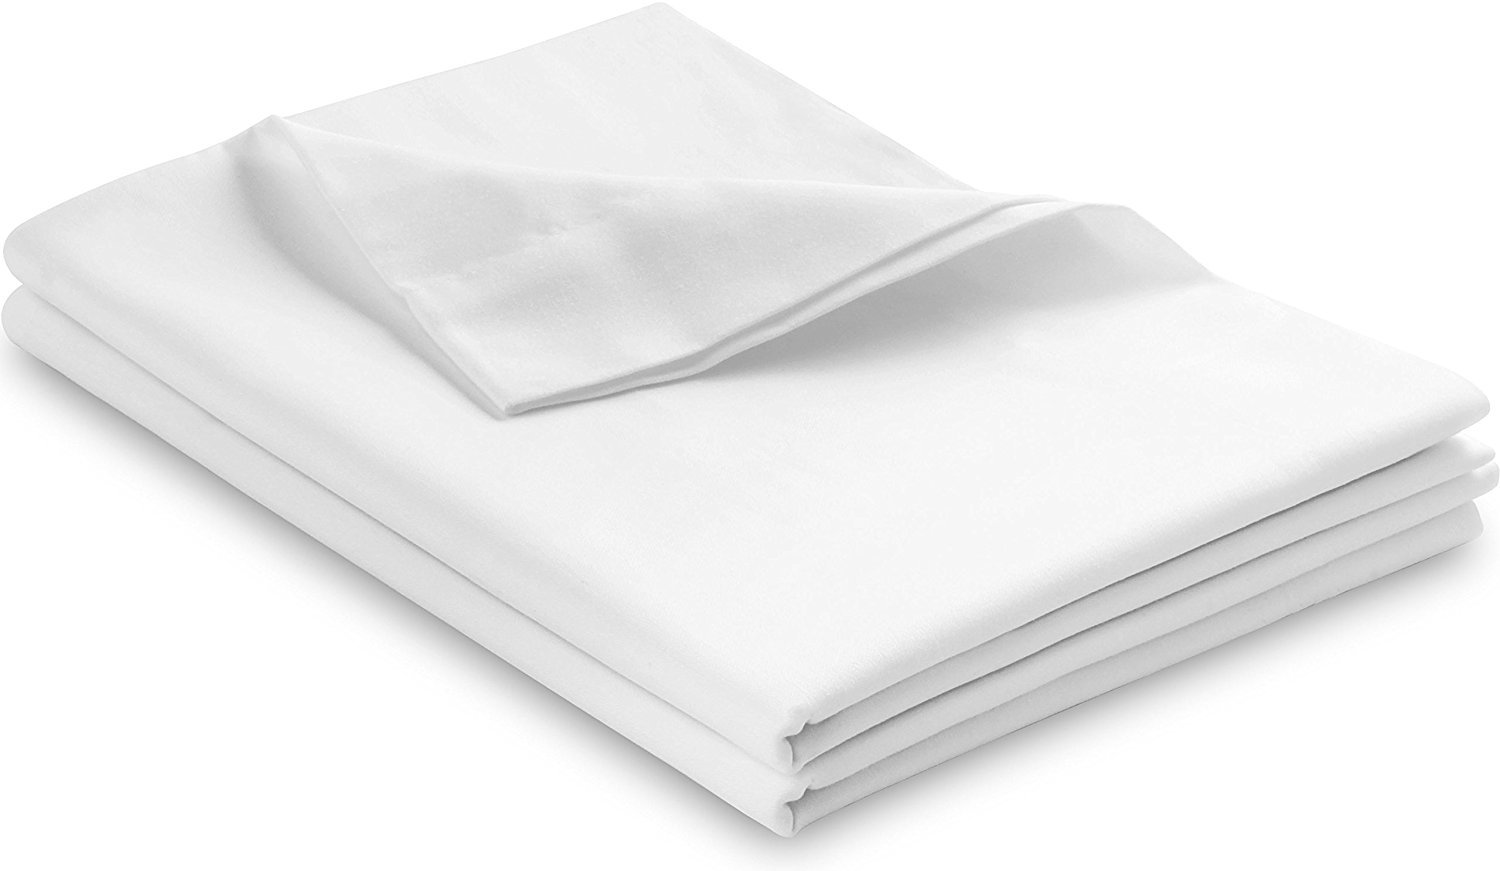 L'Cozee 100% Egyptian Cotton, 340 Thread Count, Pillow Cases – Pillow Cover, Pillow Protector set of 2, Standard - Queen Size - 20 x 28 , White Color